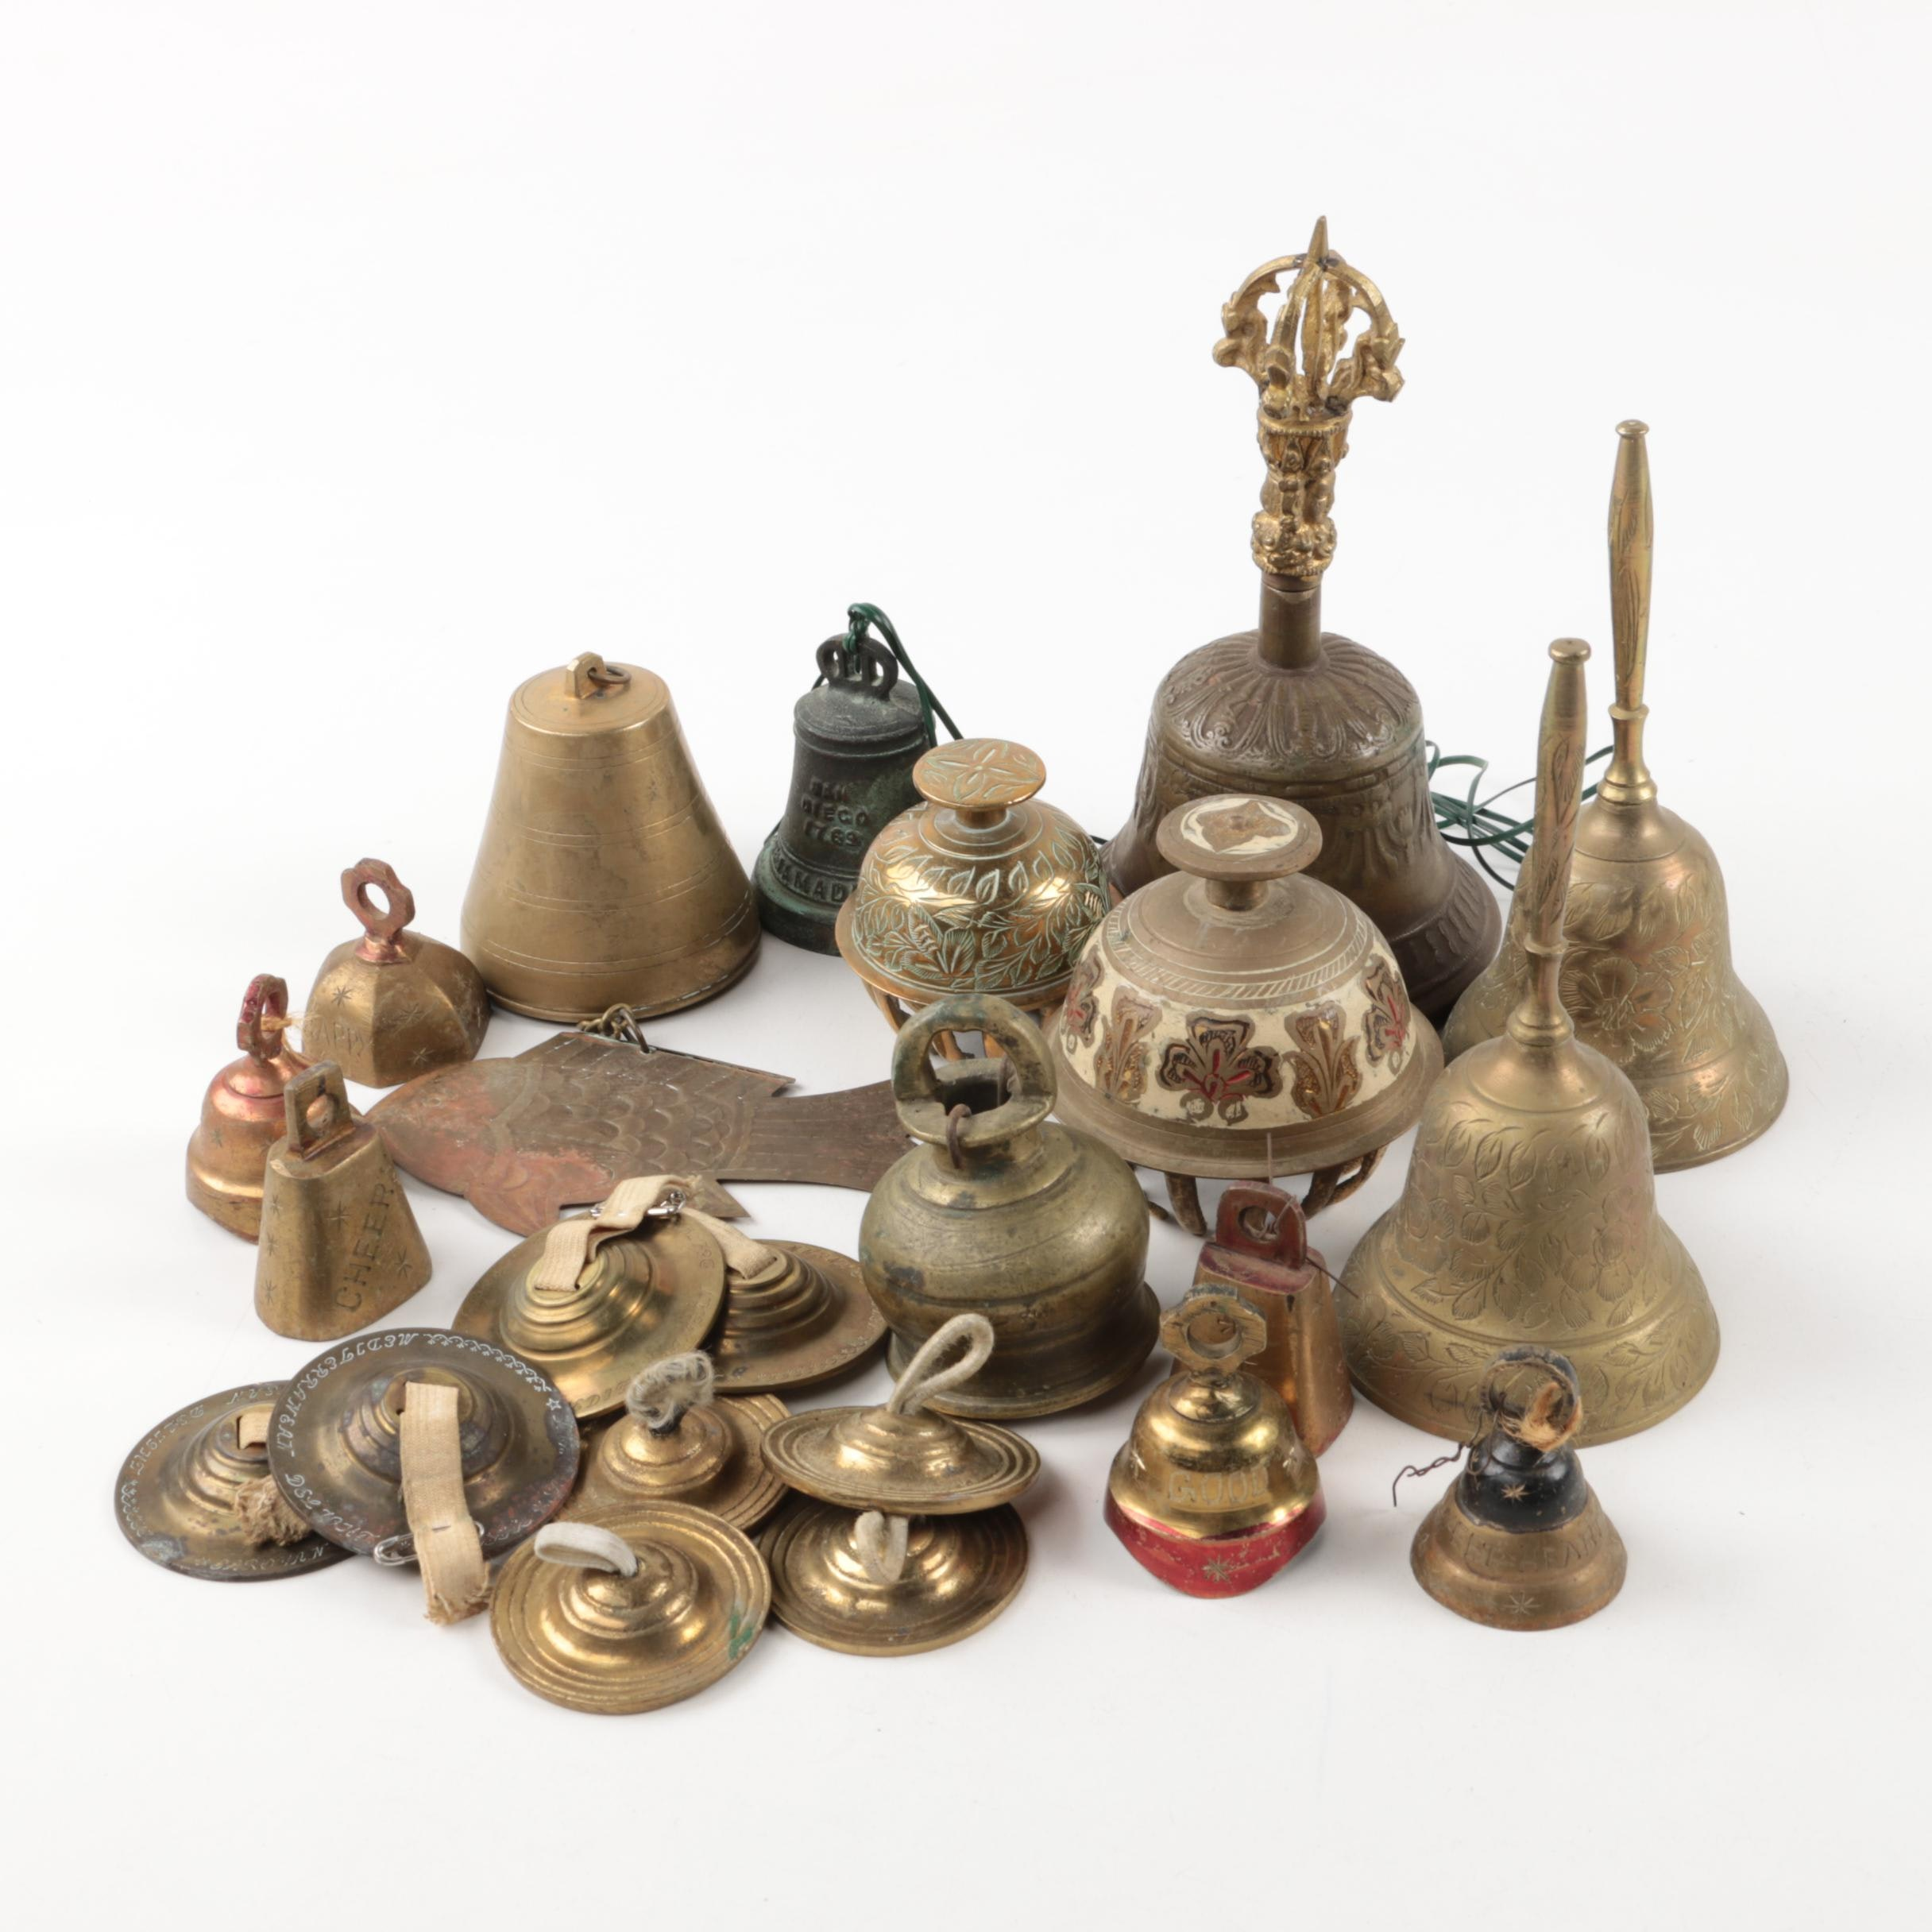 Collection of Brass Bells and Finger Symbols